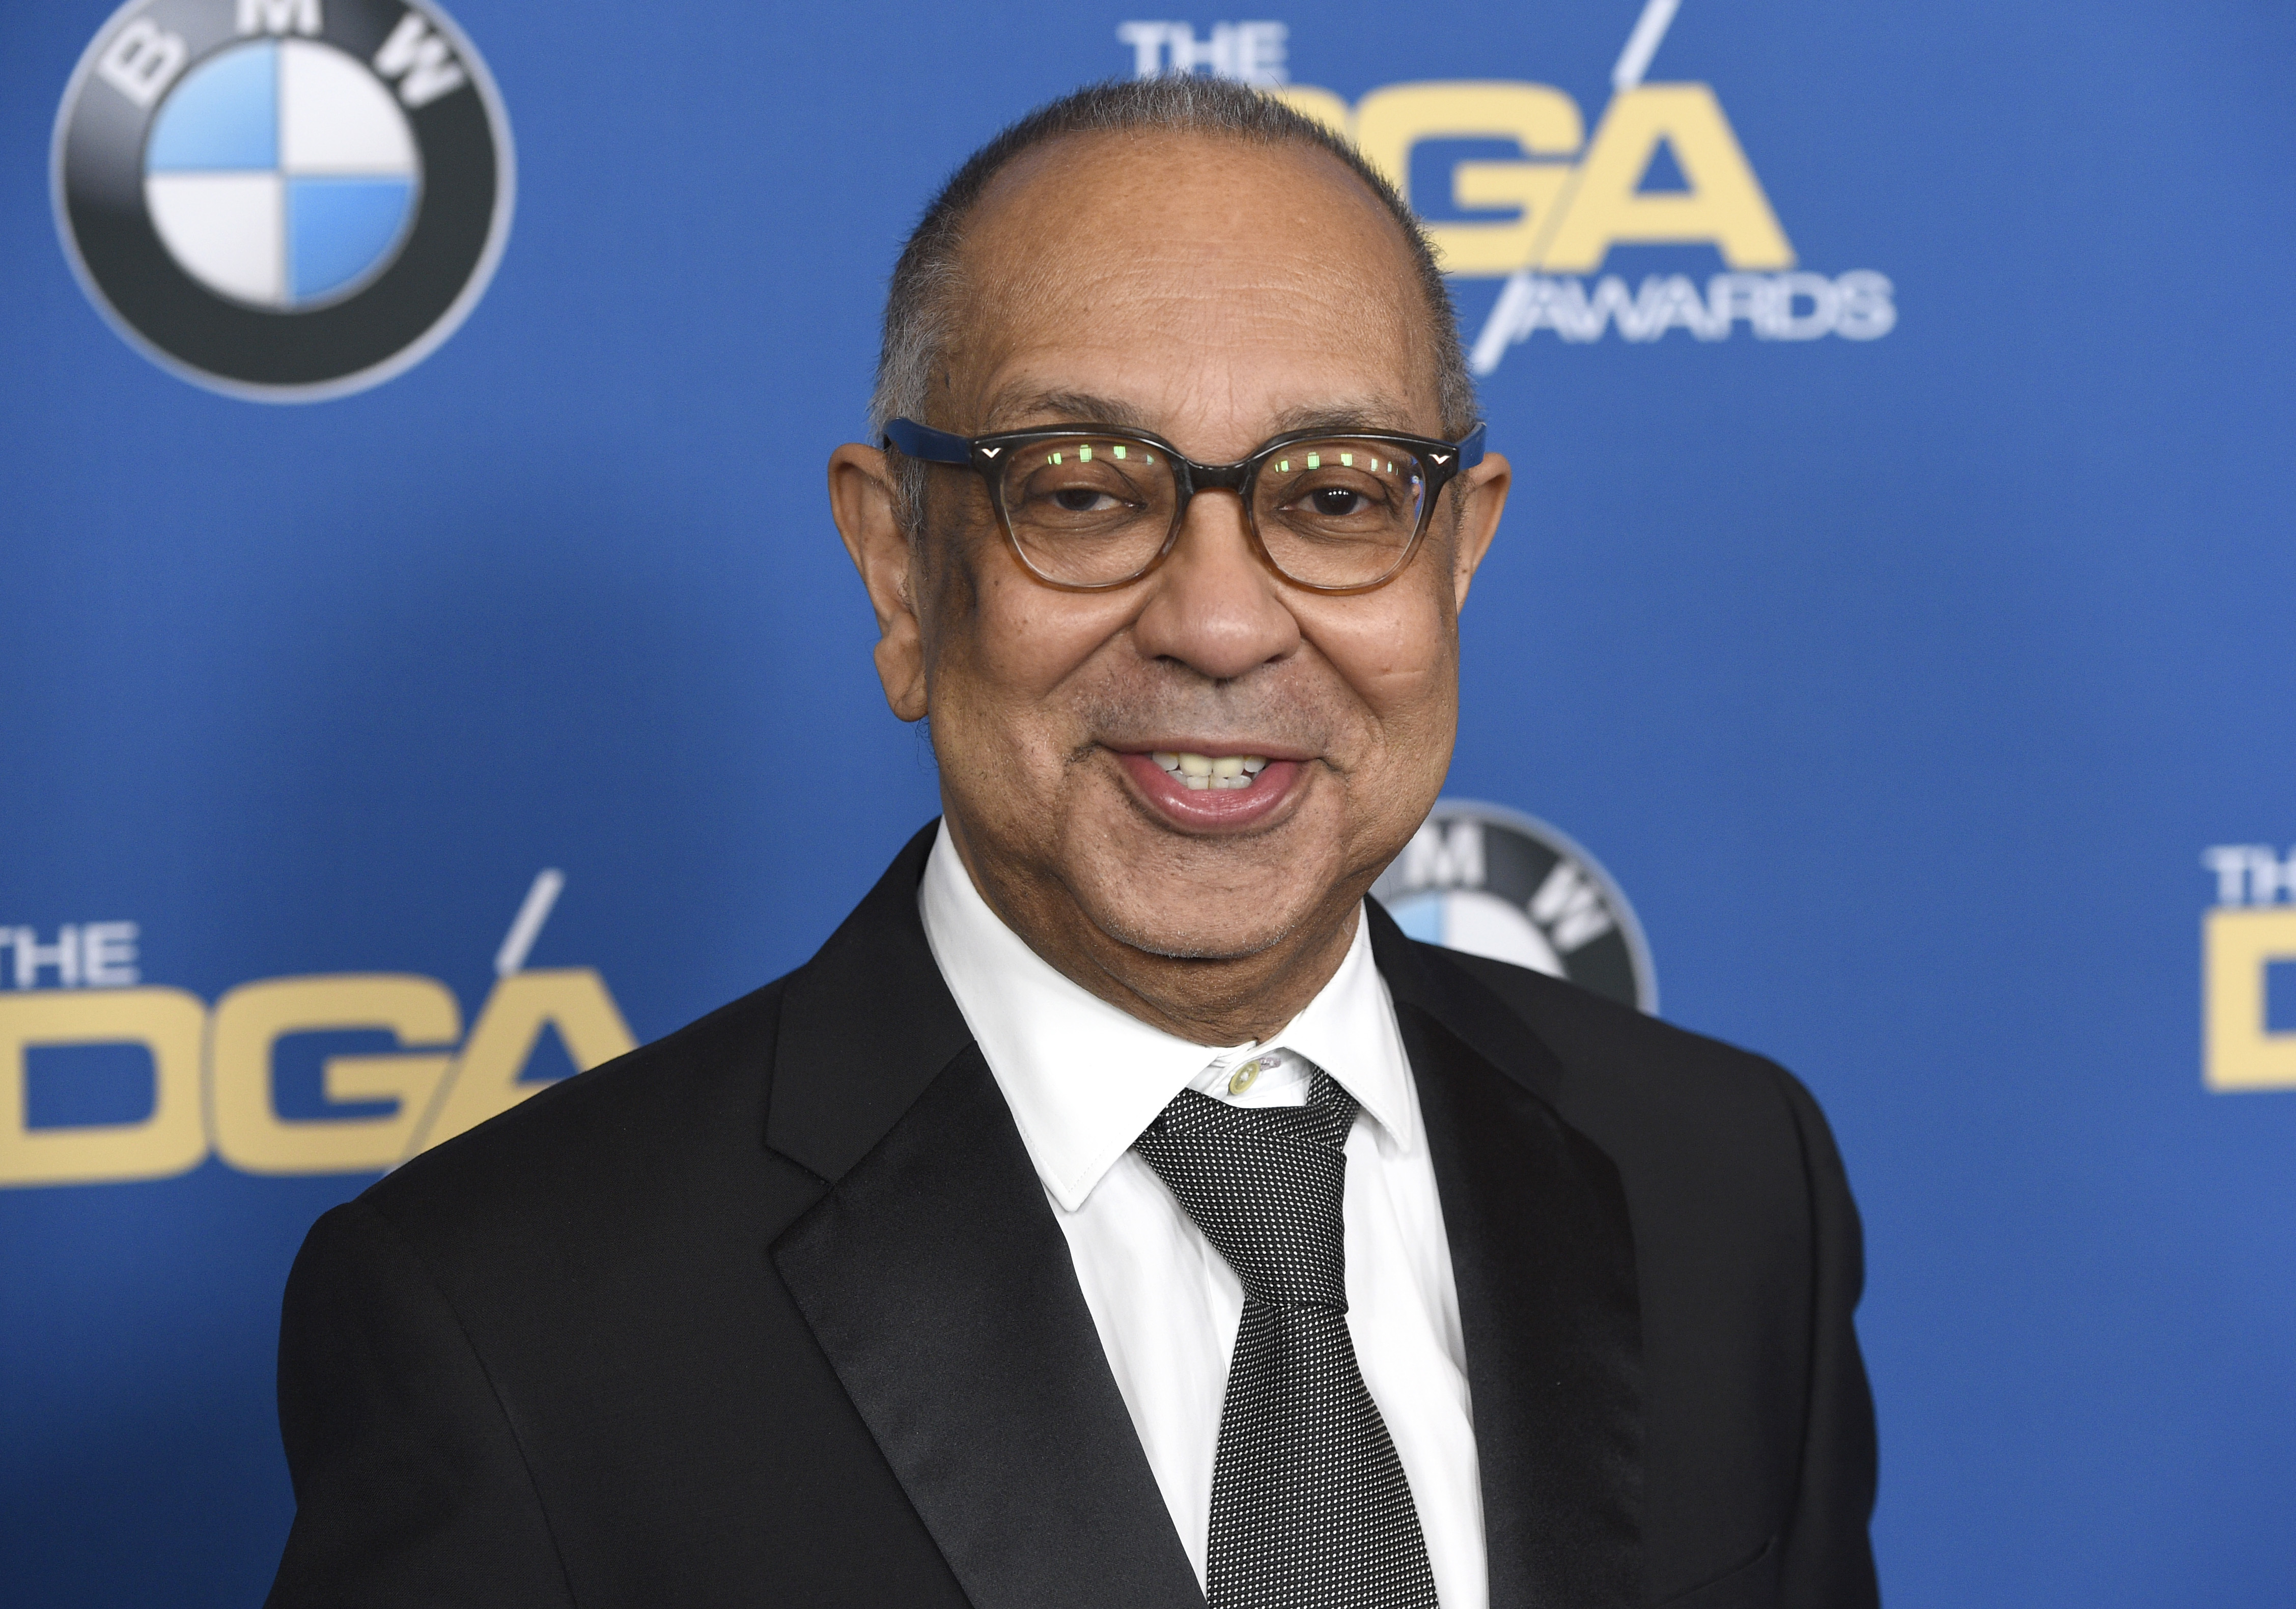 George C. Wolfe arrives at the 70th annual Directors Guild of America Awards at The Beverly Hilton hotel on Saturday, Feb. 3, 2018, in Beverly Hills, Calif. (Photo by Chris Pizzello/Invision/AP)